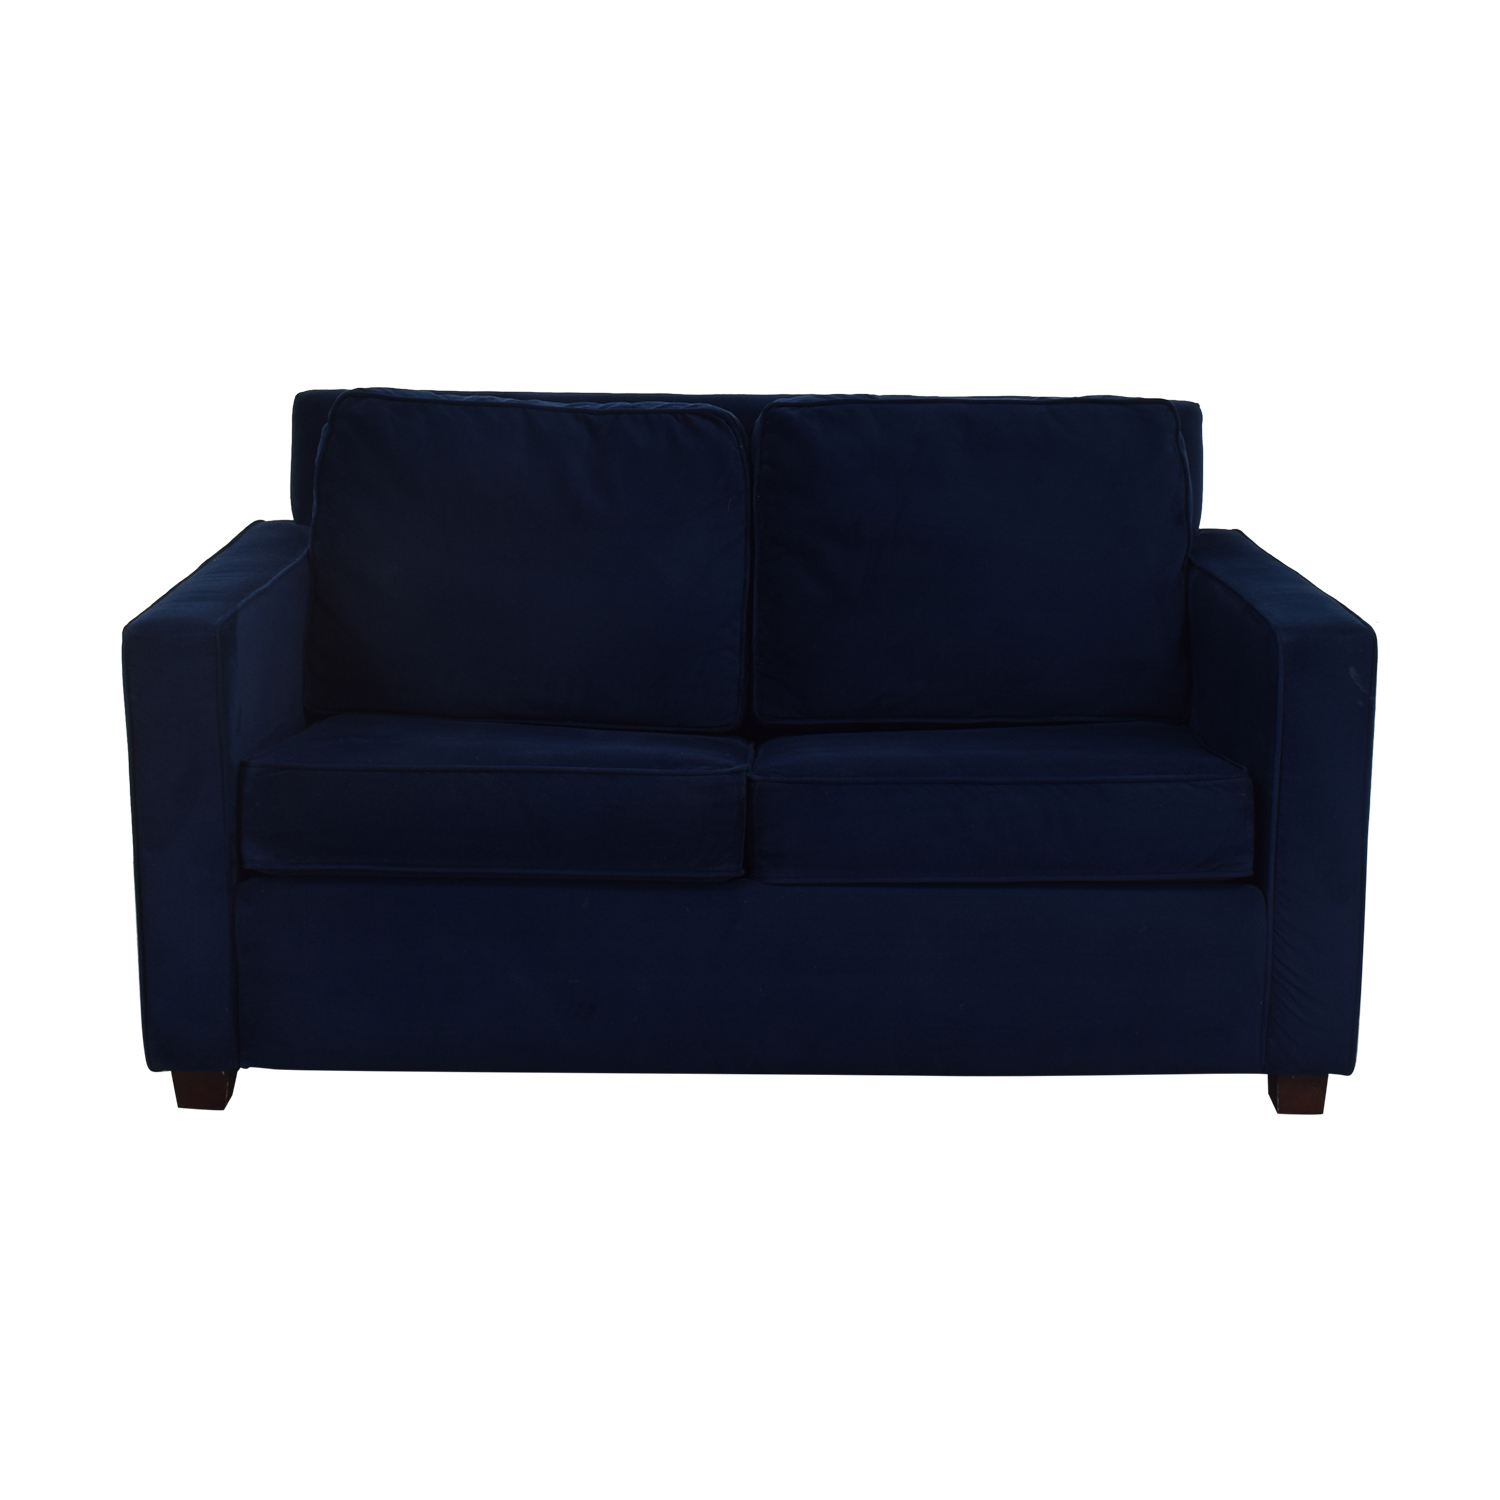 West Elm West Elm Henry Twin Sleeper Sofa dark blue